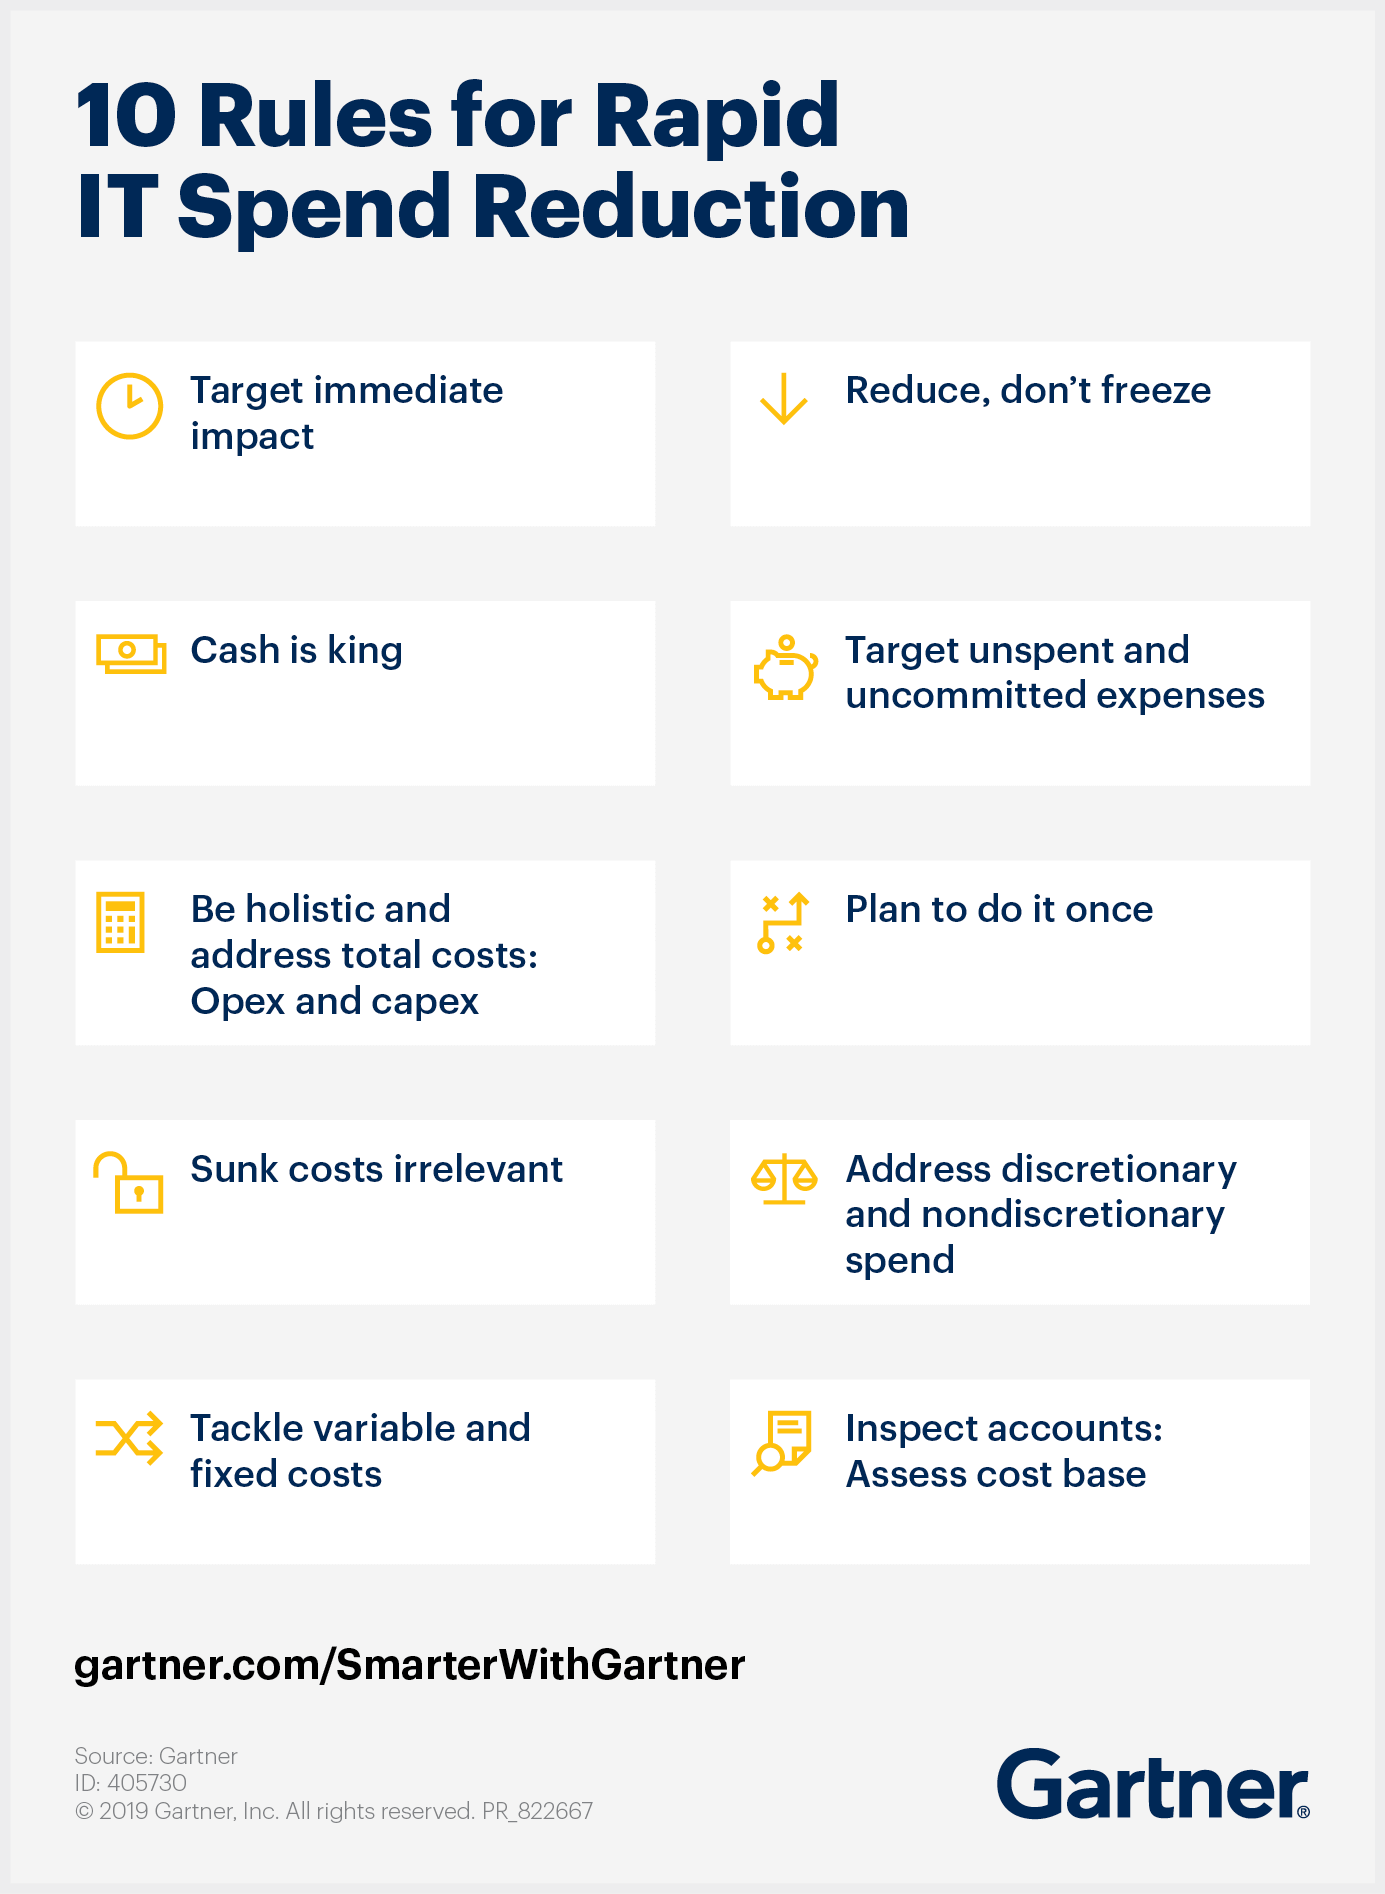 The ten rules for rapid IT spend reduction.